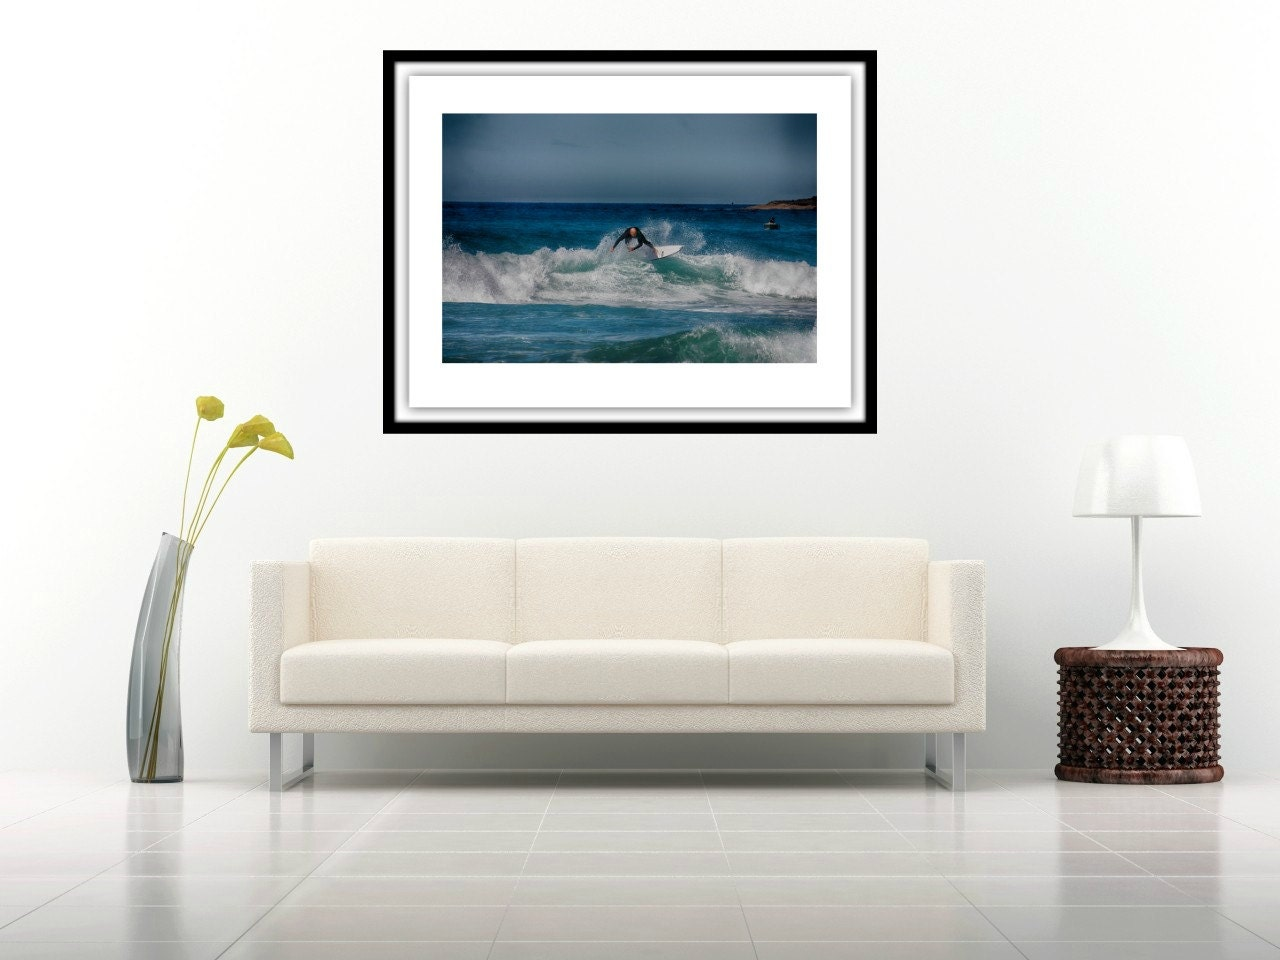 Surf action noosa queensland australia home decor wall art fine art photography Home decor wall decor australia